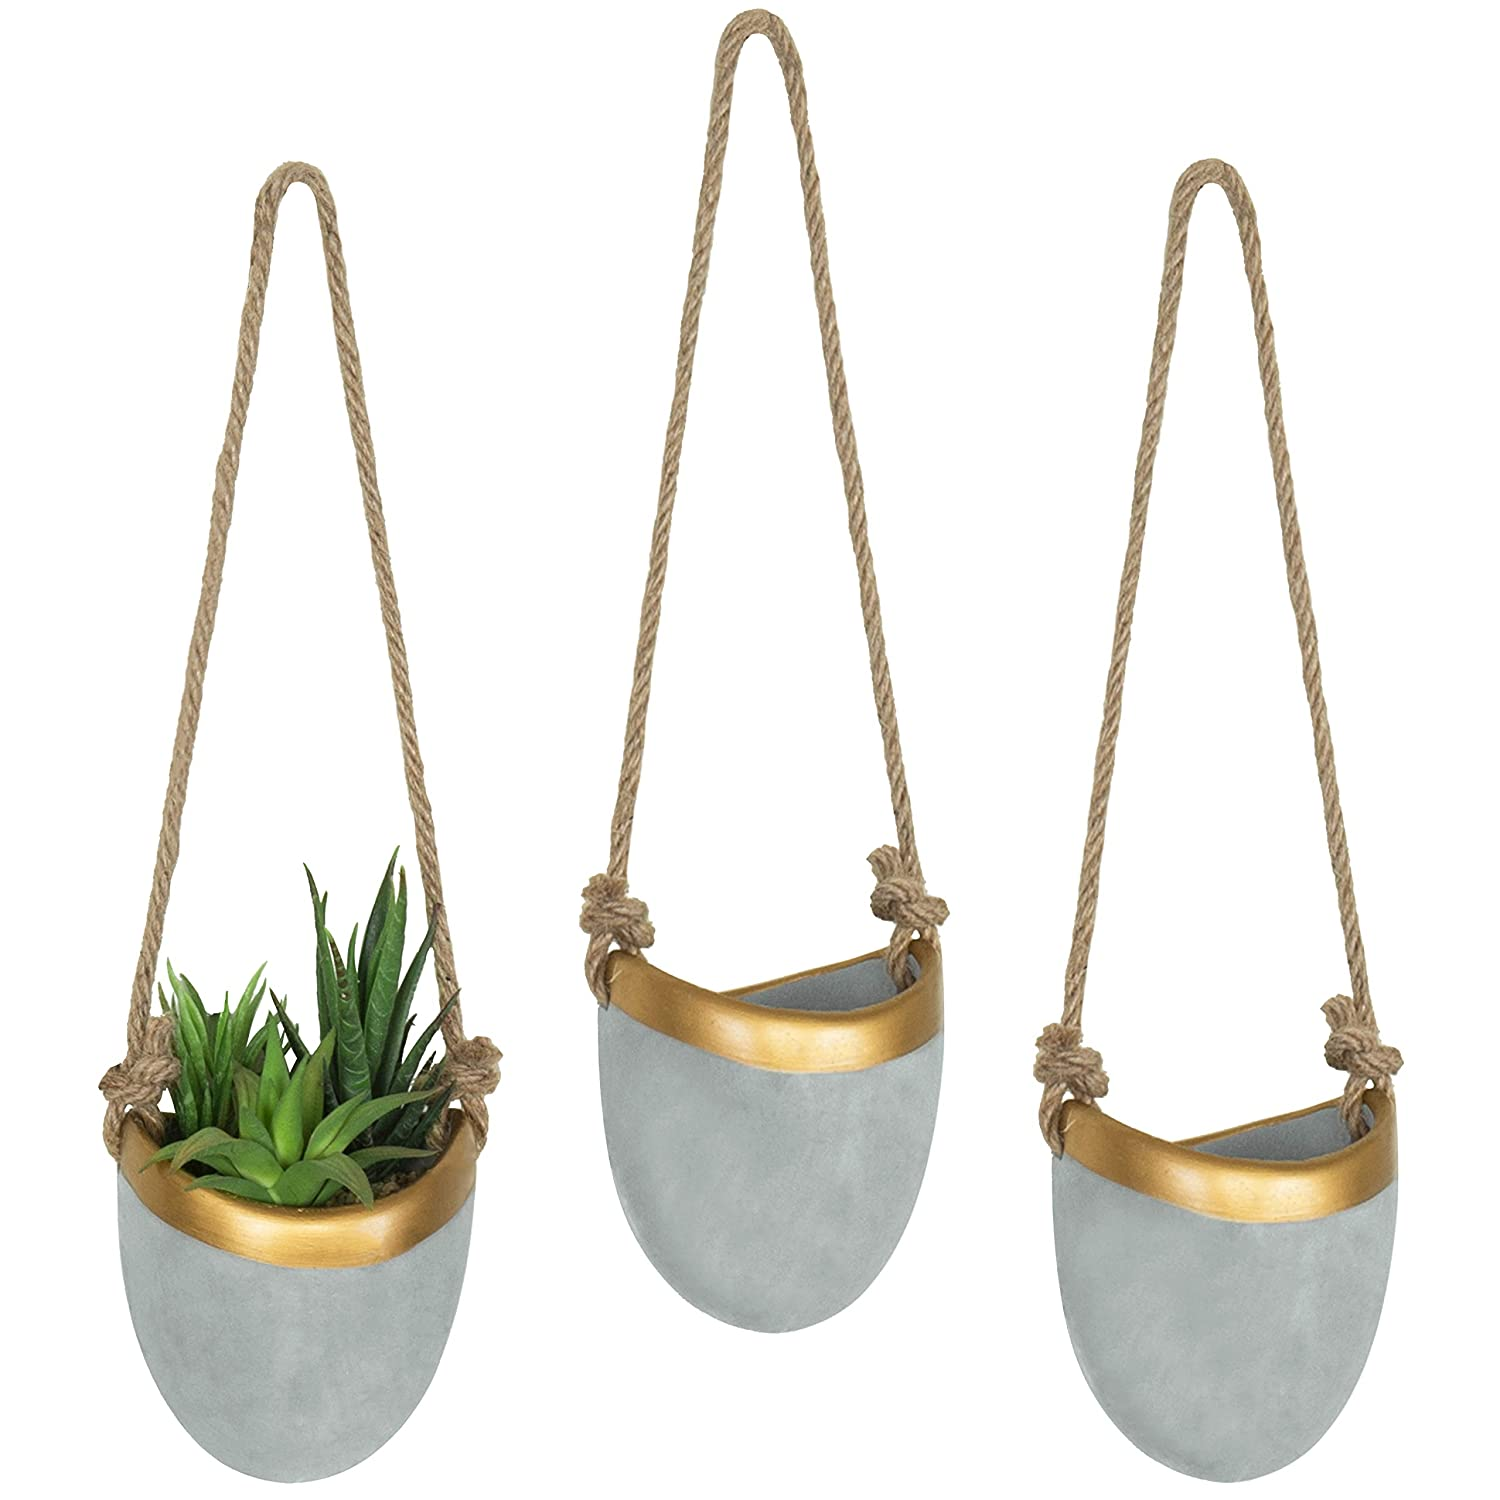 MyGift Modern Cement Grey Gold-Tone Trim Hanging Wall Planters, Set of 3